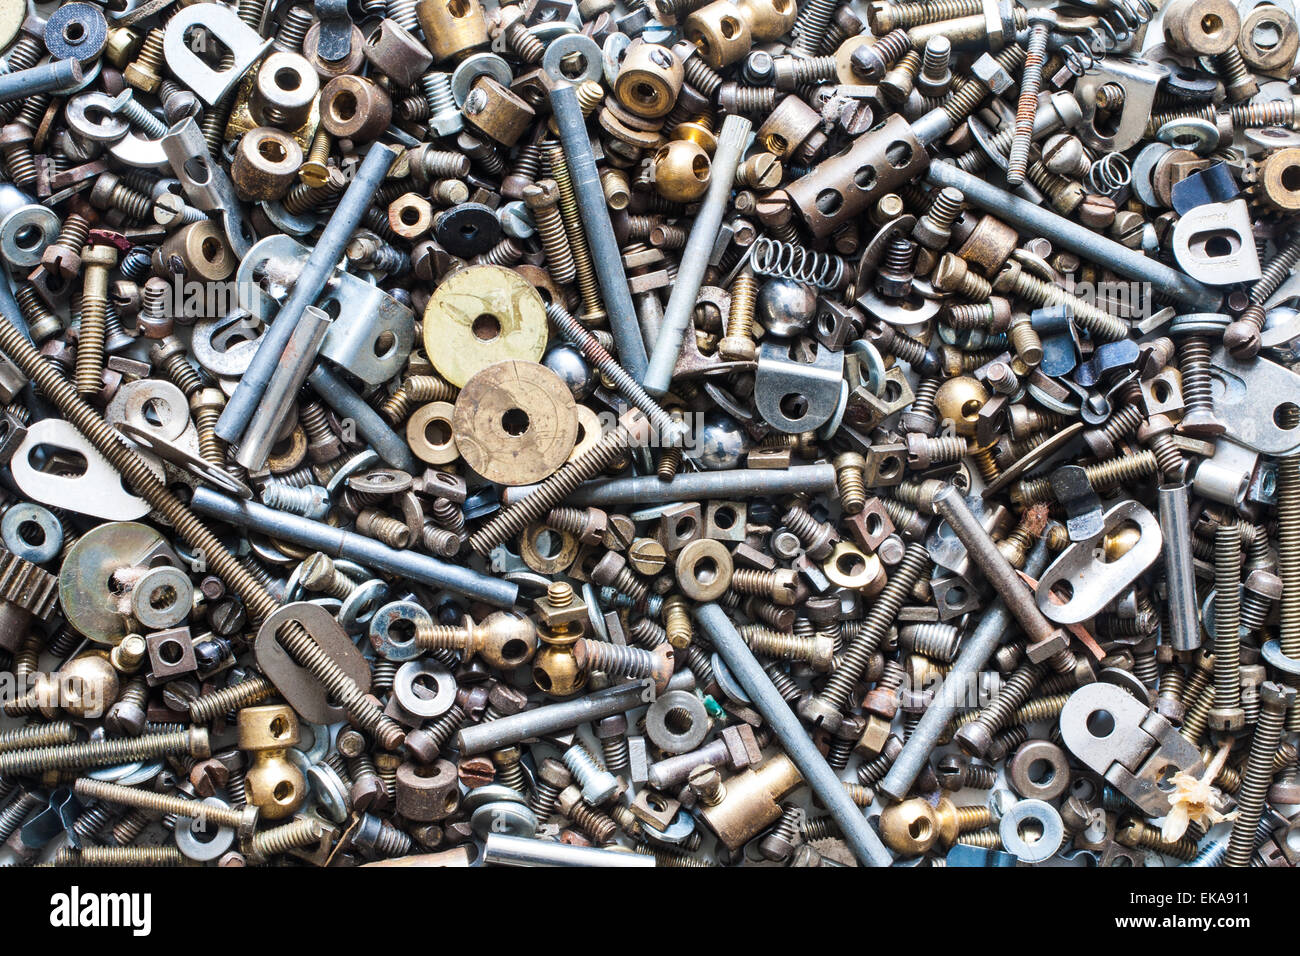 Nuts, Bolts, Washers, Etc, In Close Up - Stock Image